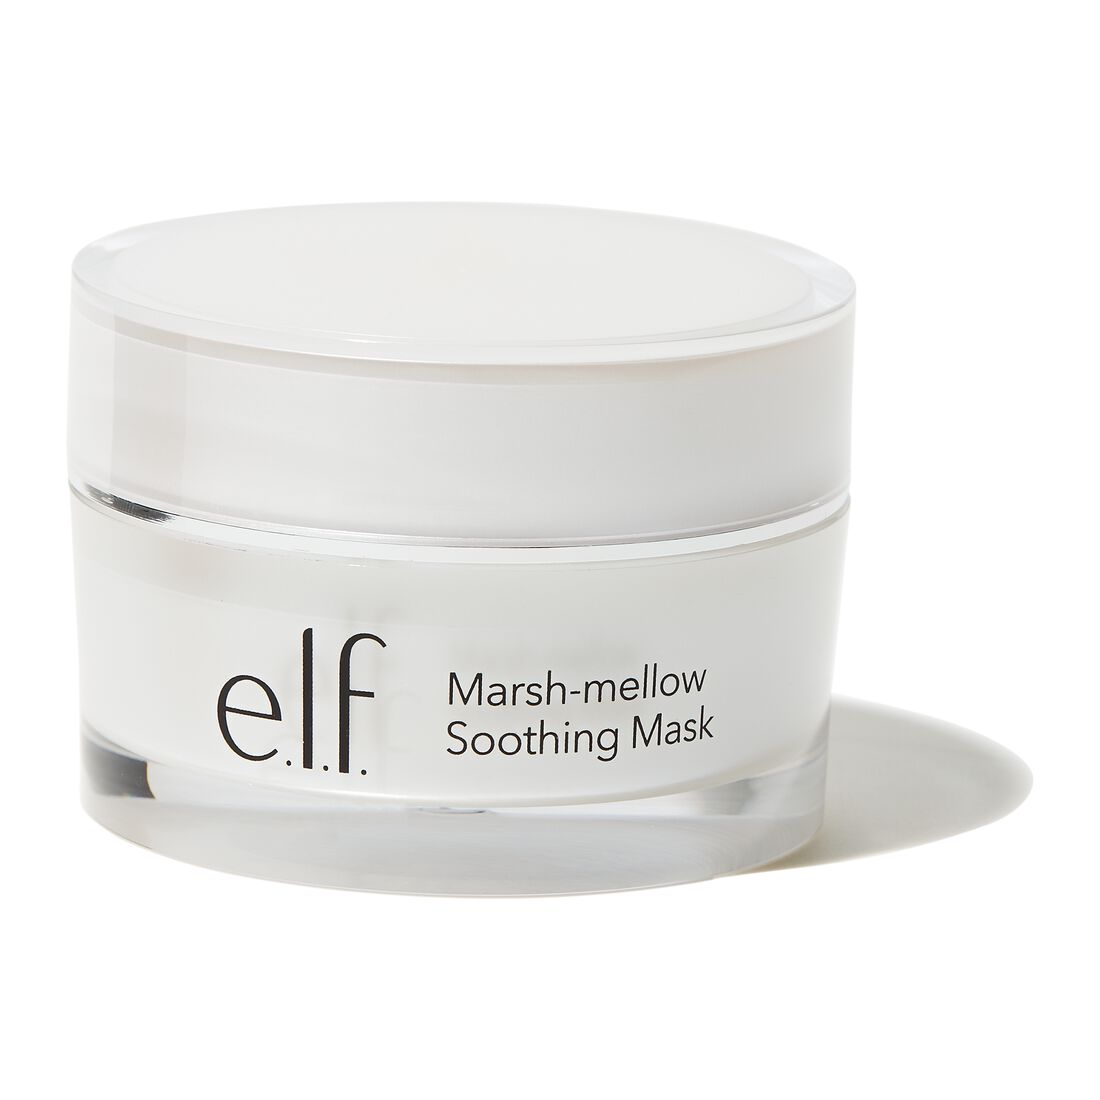 ELF Cosmetics - Marsh-mellow Soothing Mask